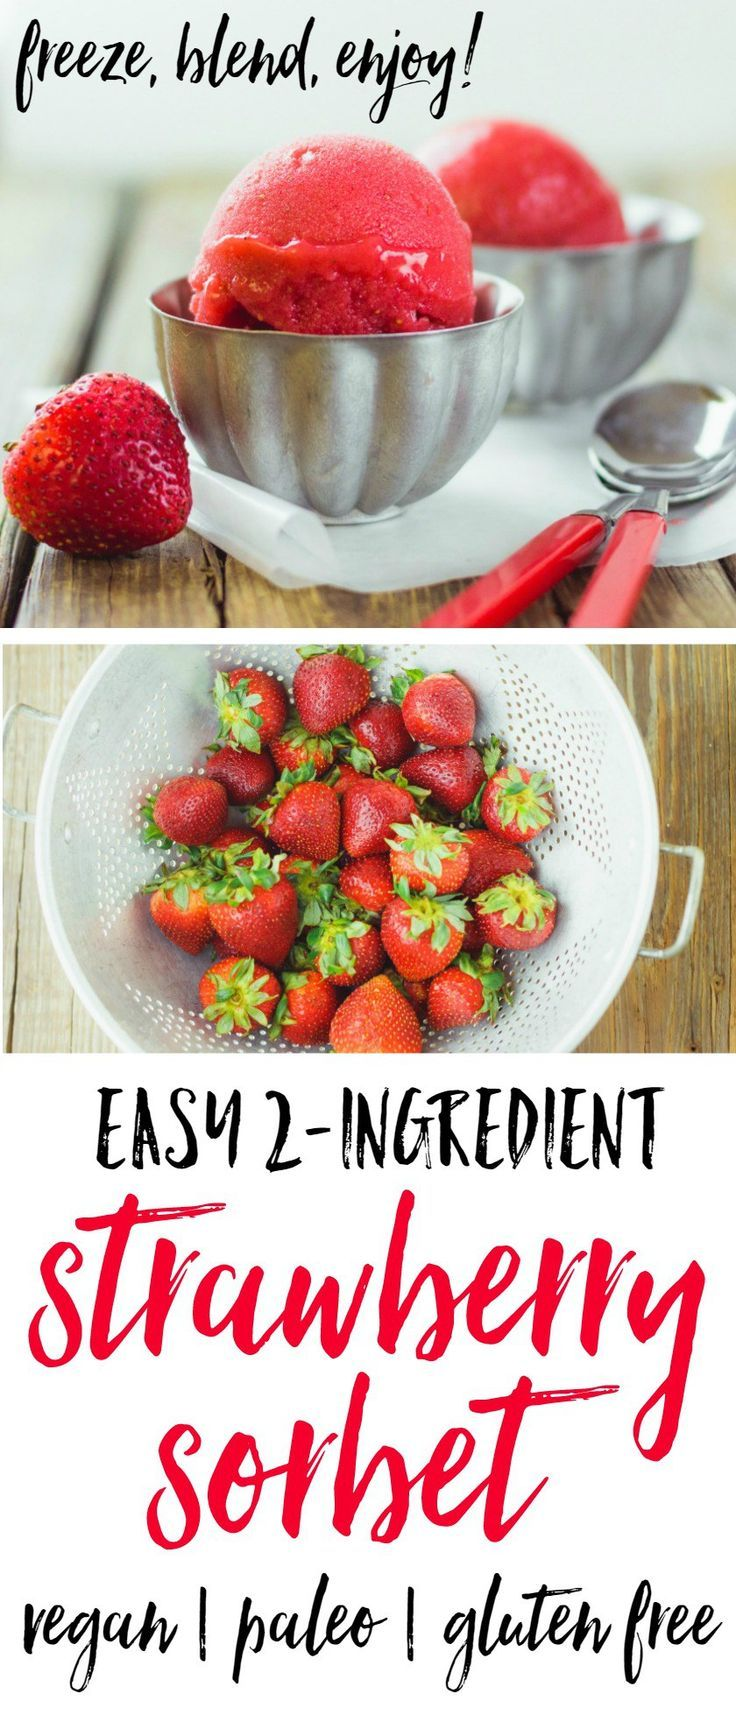 I love this easy 2-Ingredient Strawberry Sorbet! Frozen strawberries + a splash of maple syrup or agave + a whirl in the food processor = cold, creamy, intensely strawberry-riffic sorbet! Healthy and SO delicious!